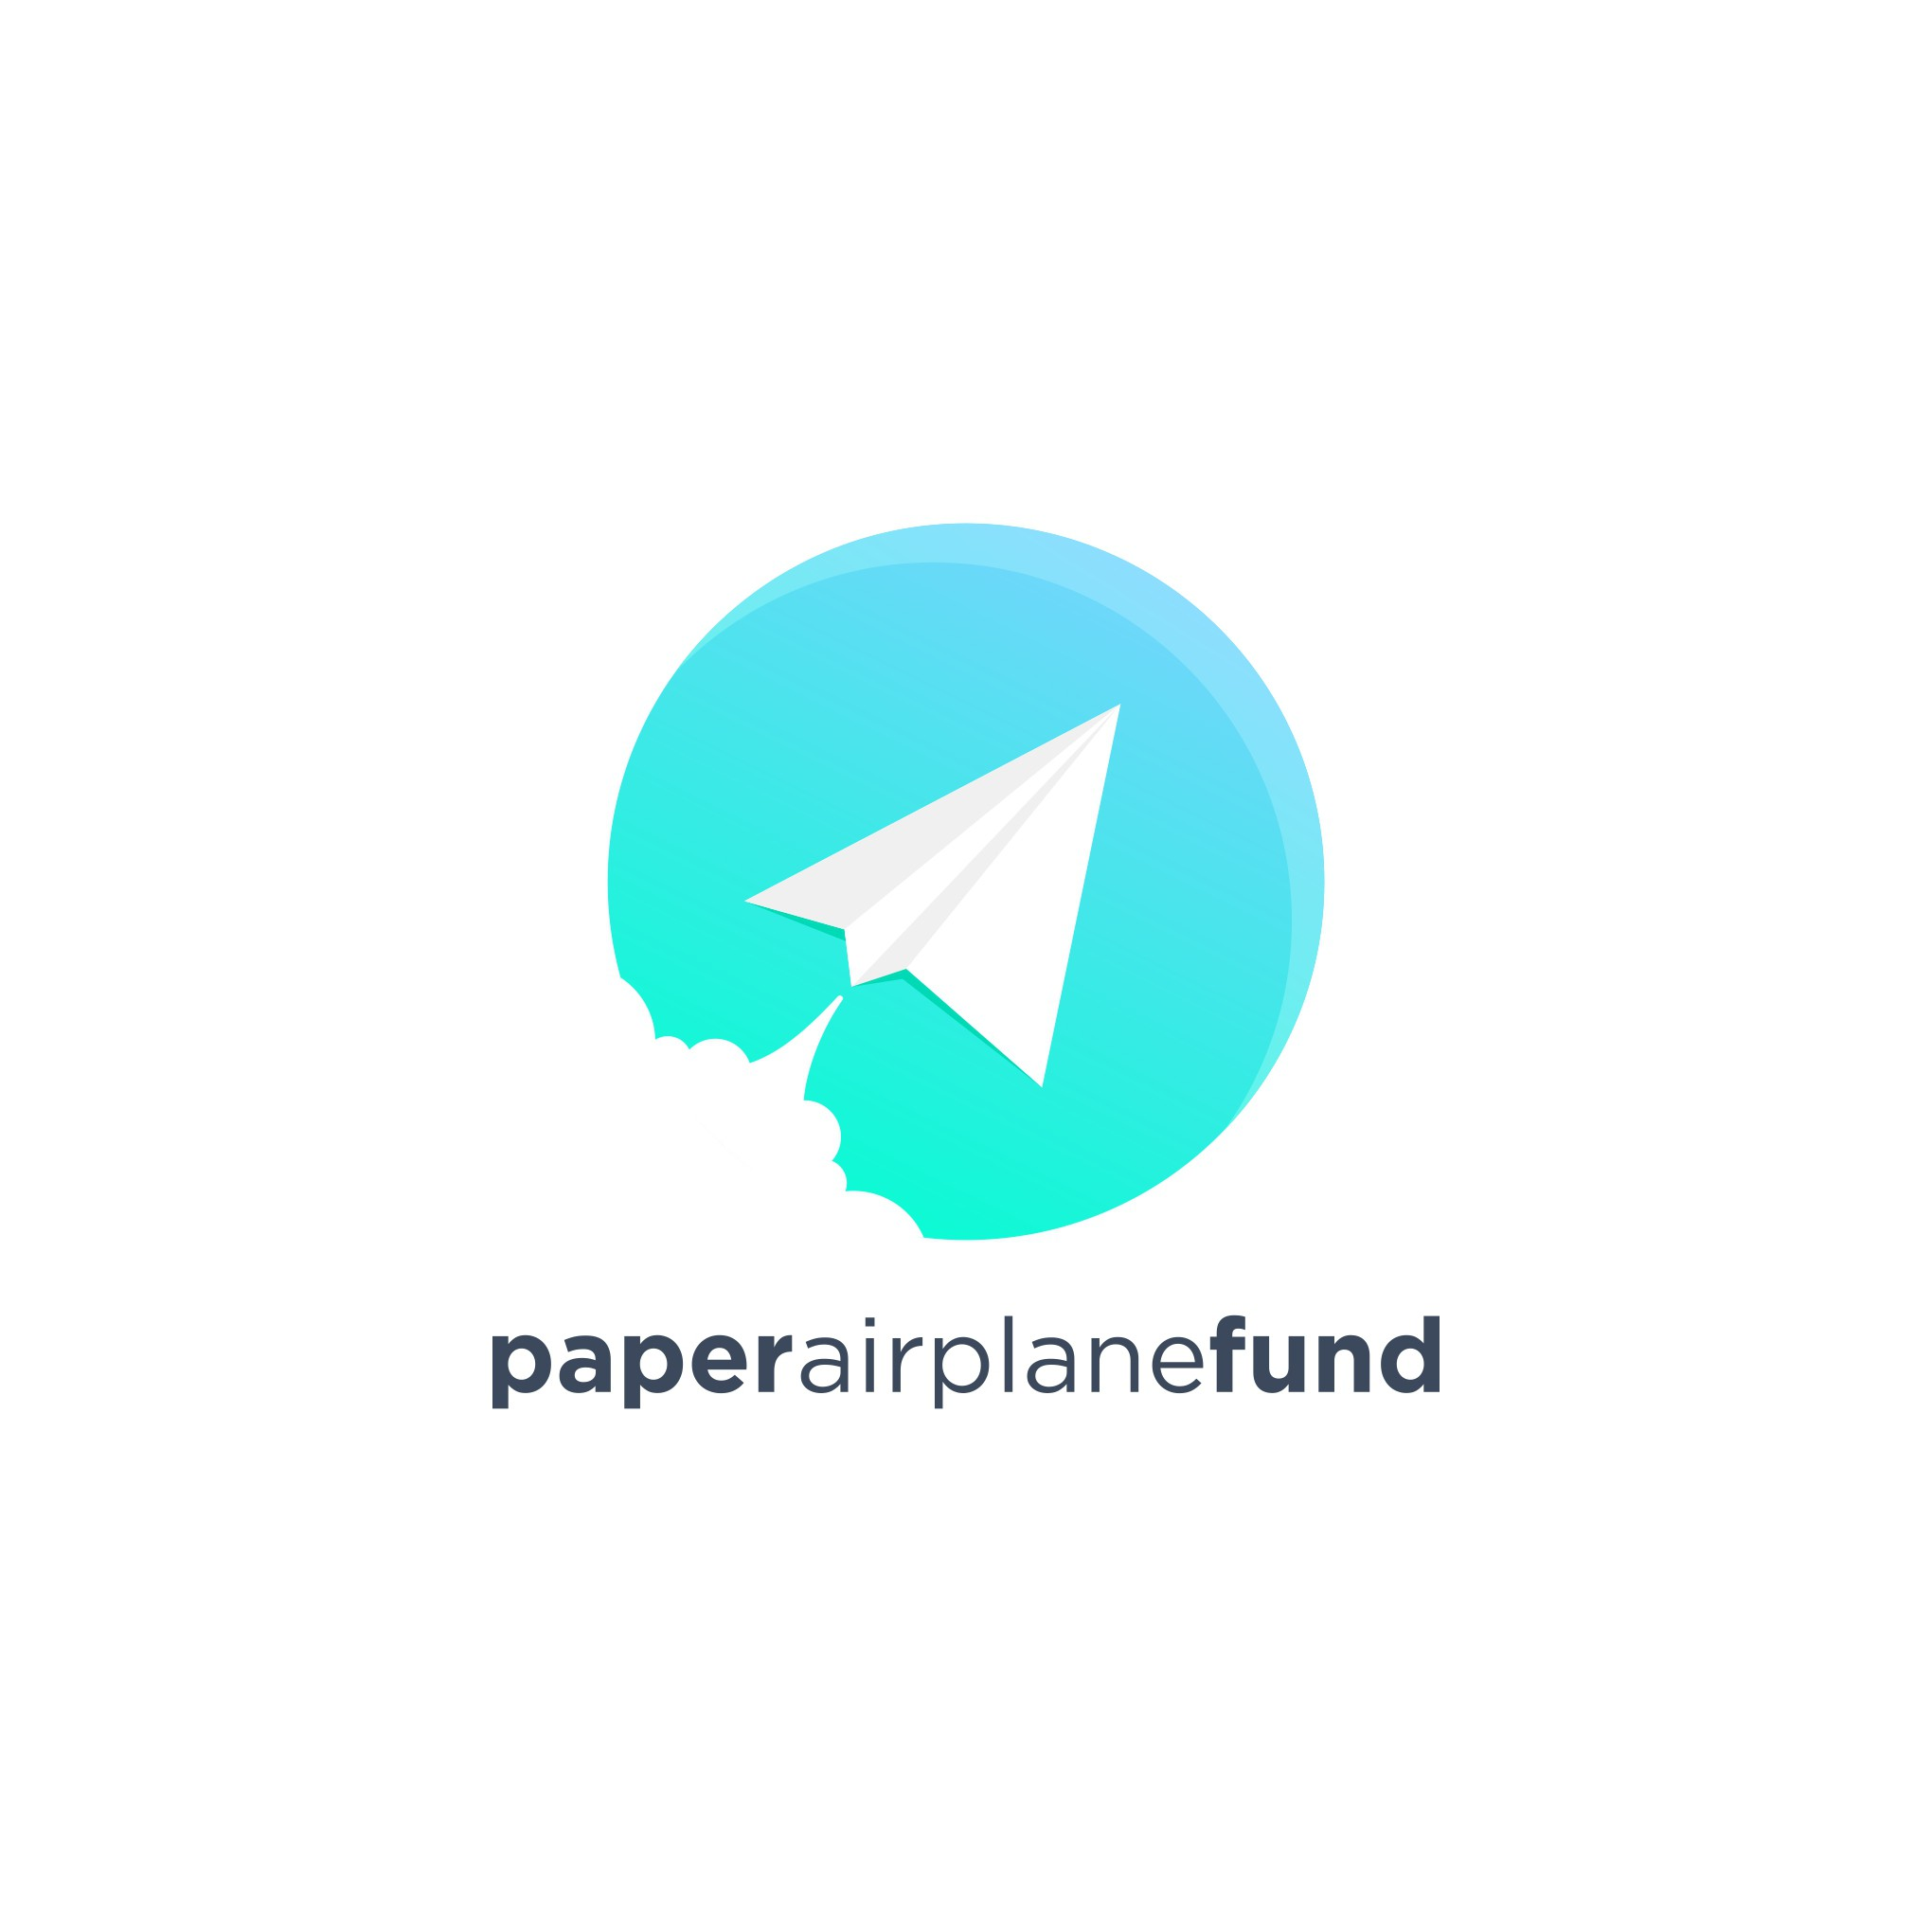 logo for financial services platform that appeals to kids and adults